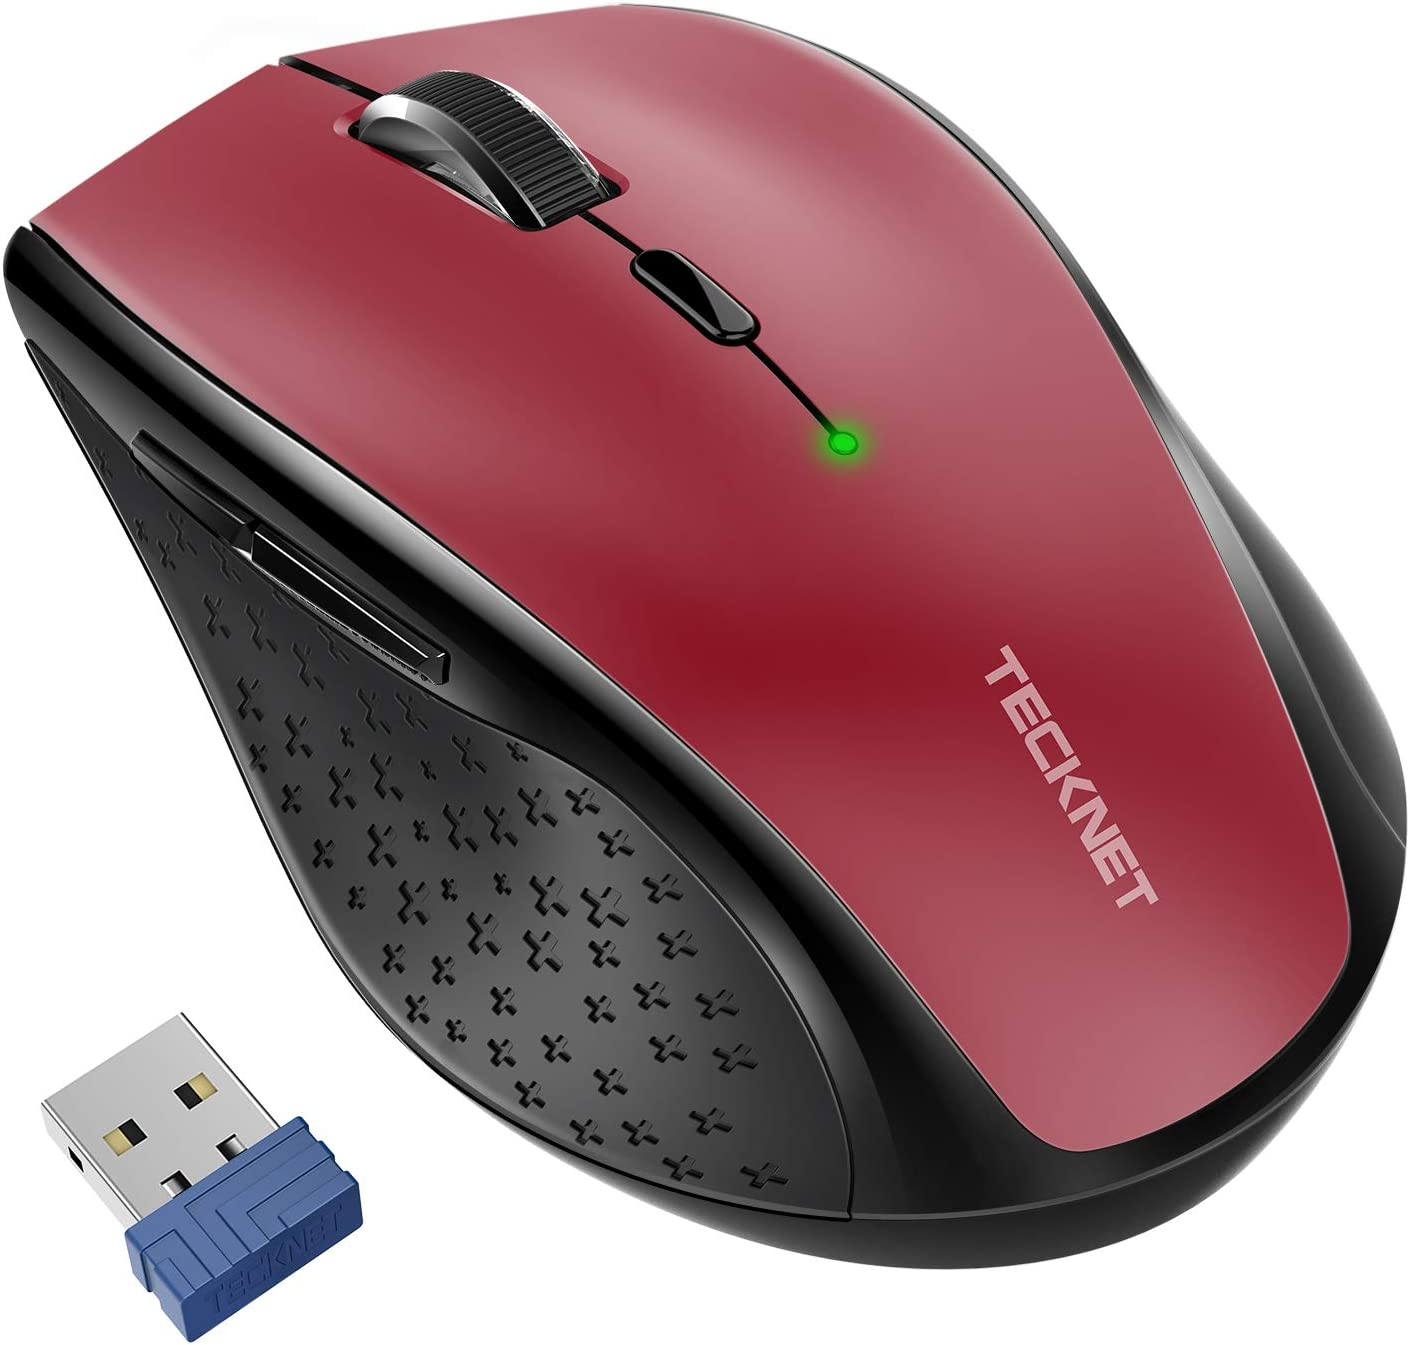 TeckNet Classic 2.4G Portable Optical Wireless Mouse with USB Nano Receiver for Notebook,PC,Laptop,Computer,6 Buttons,30 Months Battery Life,4800 DPI,6 Adjustment Levels